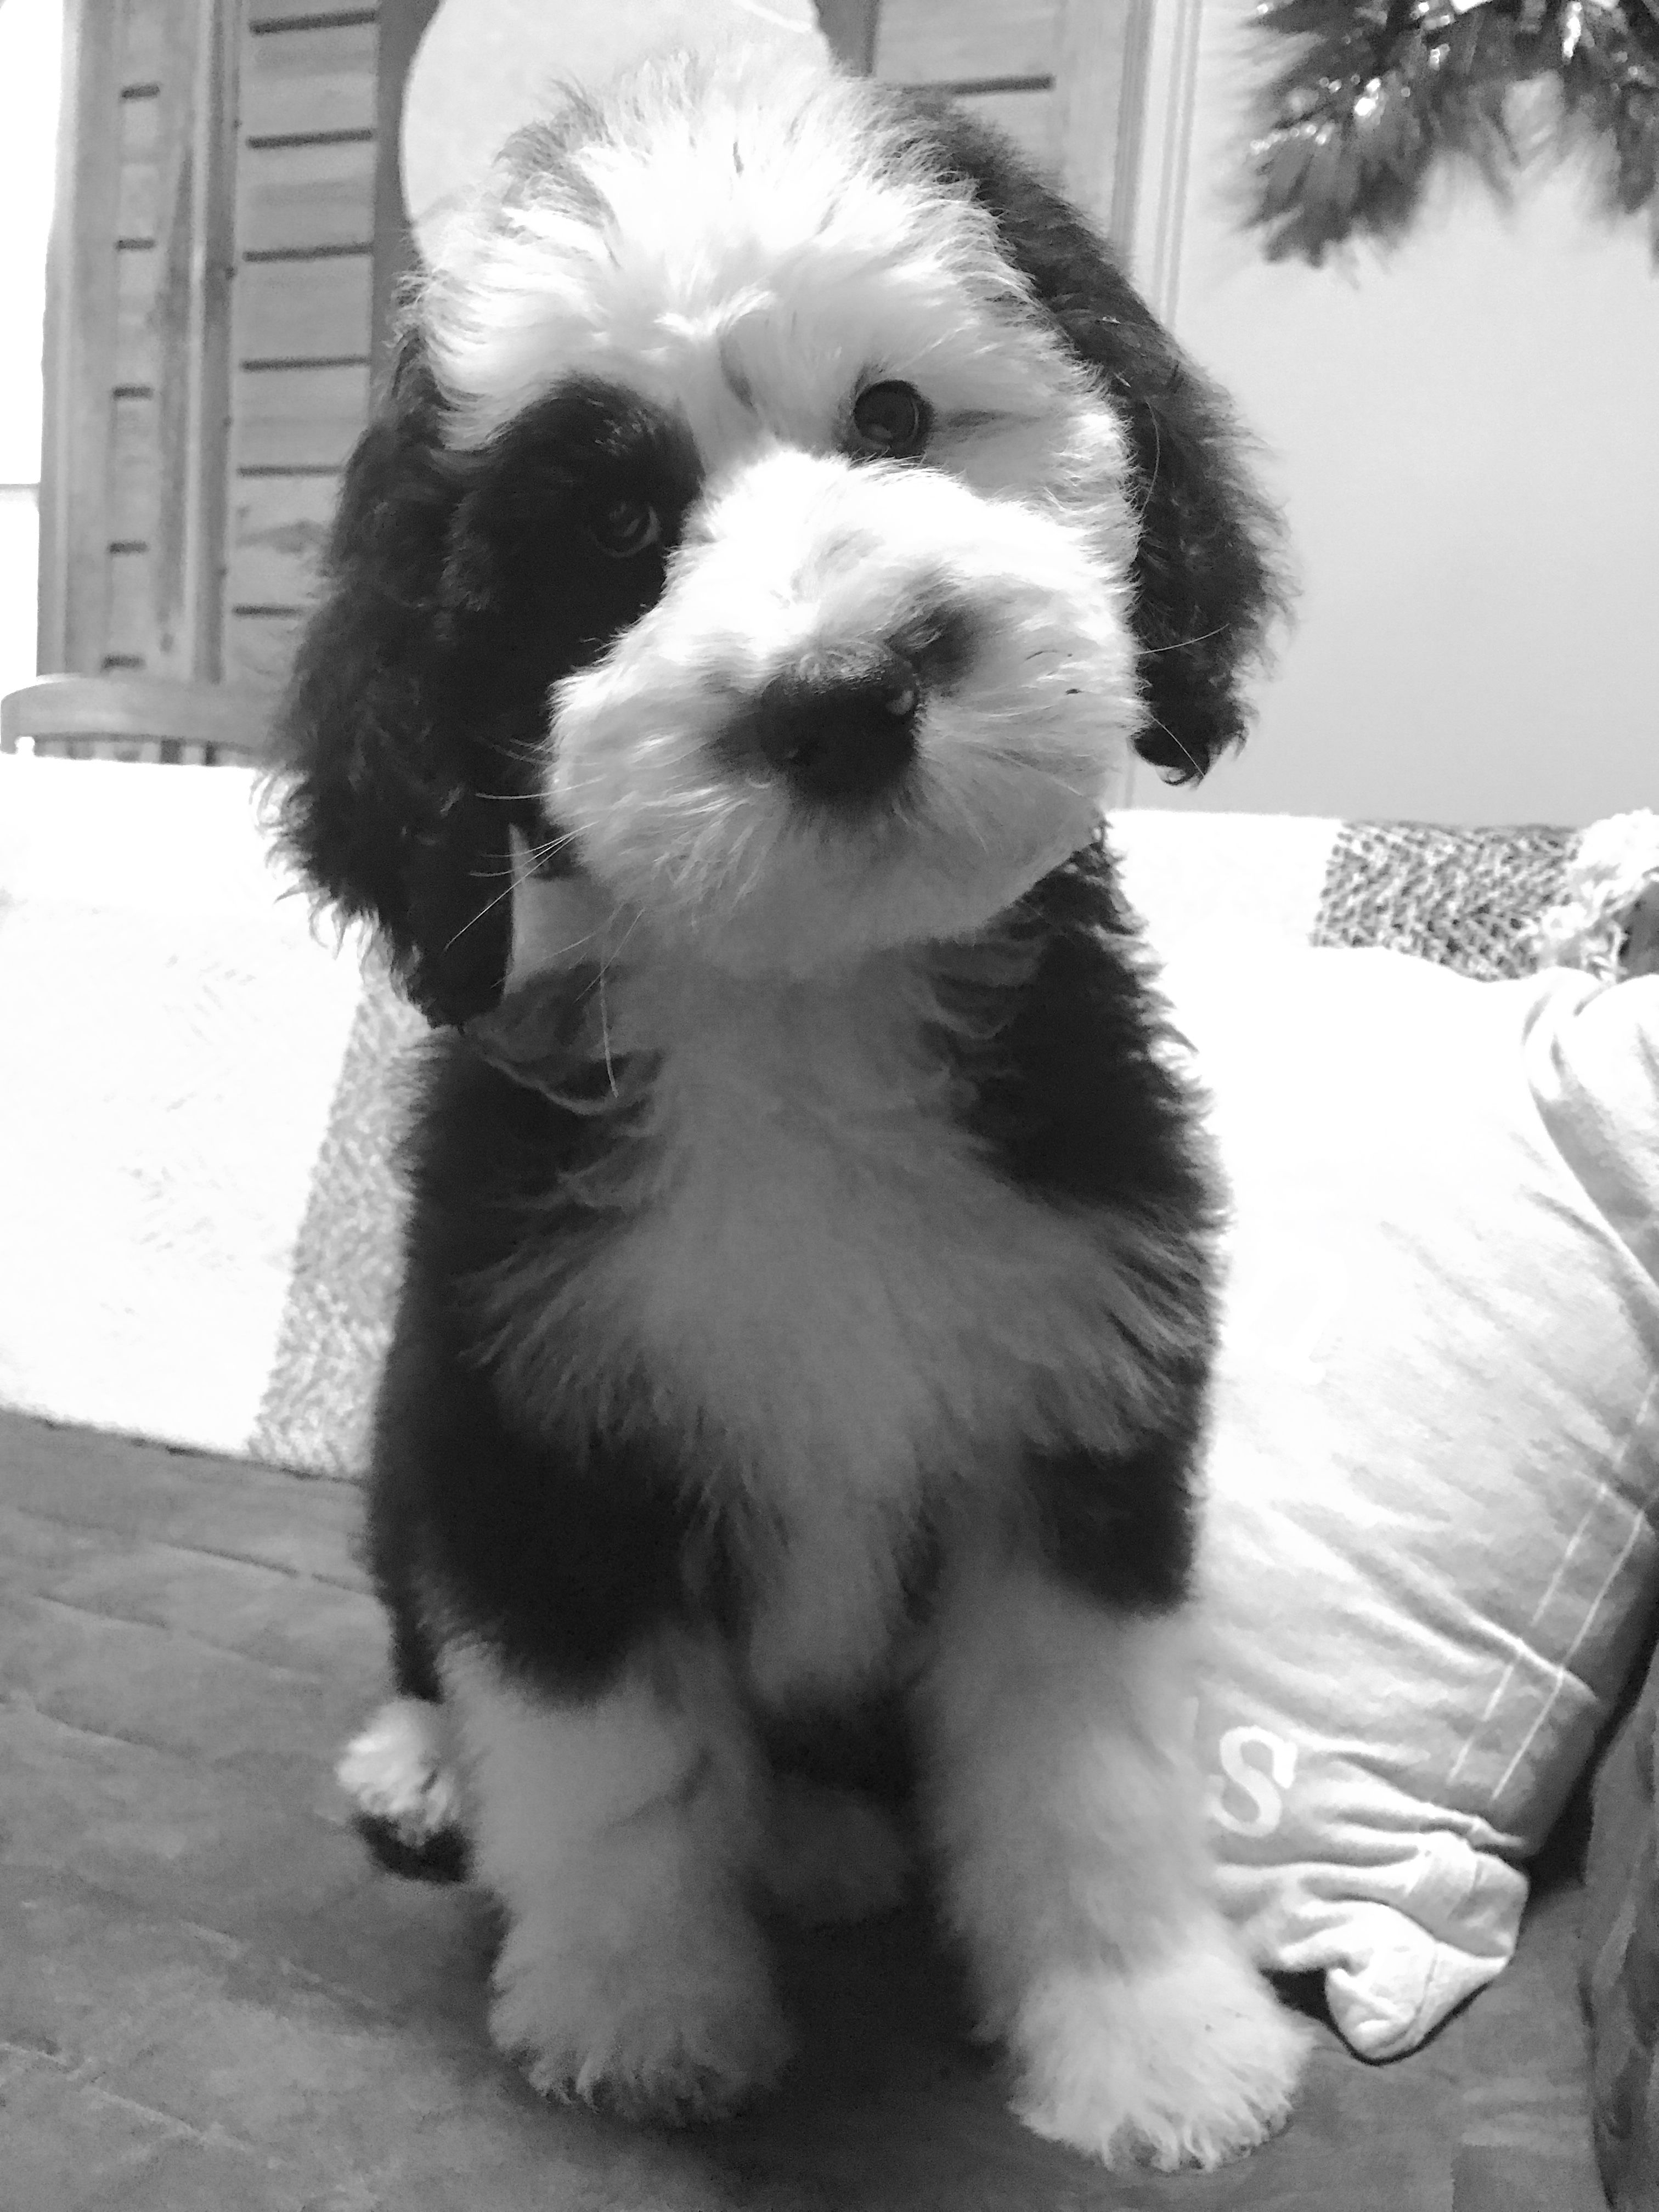 Lady + Gip Sheepadoodle puppies #gvd #gvdlove #goldenvalleydoodles